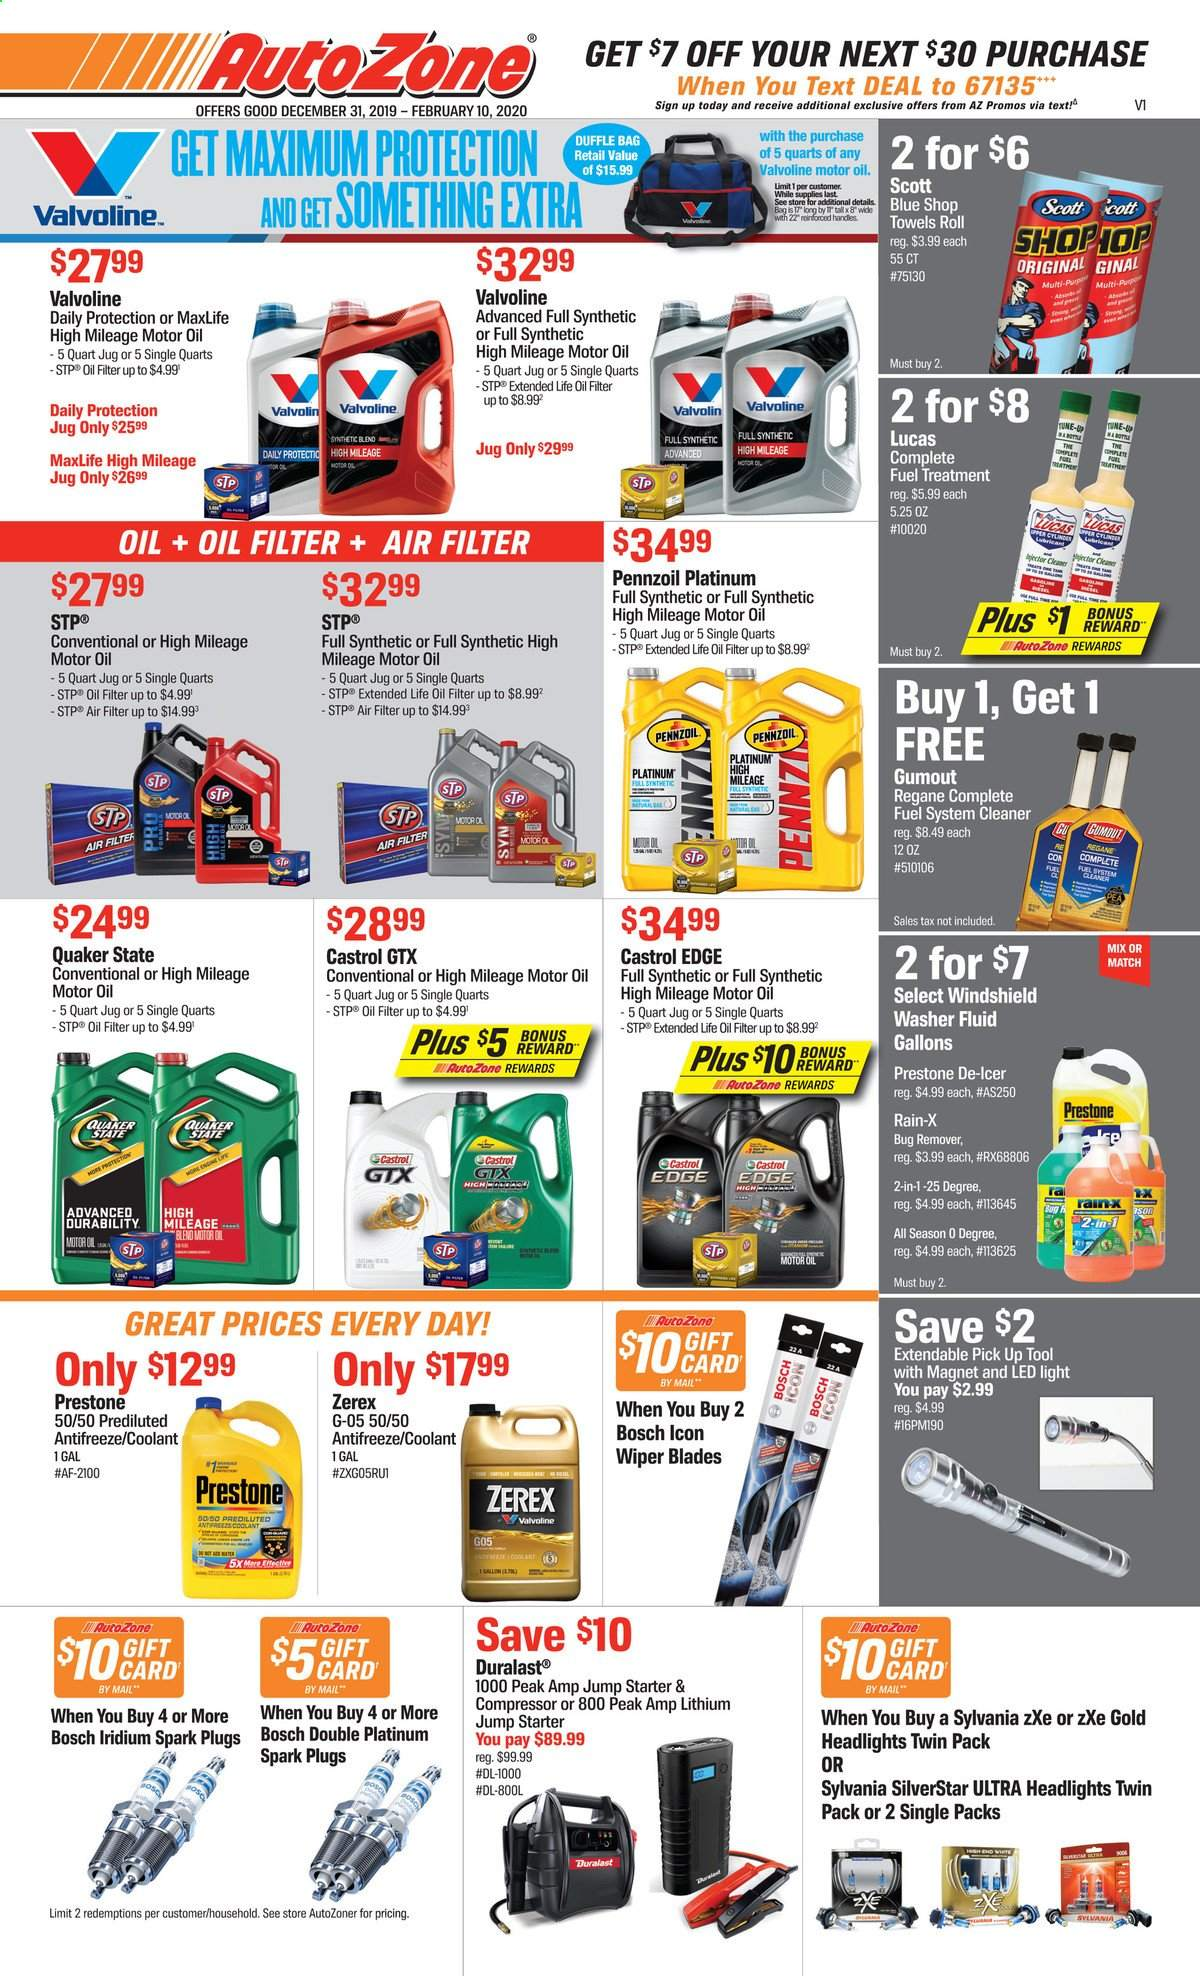 Autozone Flyer - 12.31.2019 - 02.10.2020 - Sales products - Sylvania, Bosch, air filter, spark plugs, wiper blades, oil filter, Duralast, starter, fuel system cleaner, Lucas, cleaner, antifreeze, STP, washer fluid, Rain-X, motor oil, Prestone, fuel supplement, Valvoline, Castrol, Quaker State, Pennzoil, Gumout, air compressor. Page 1.